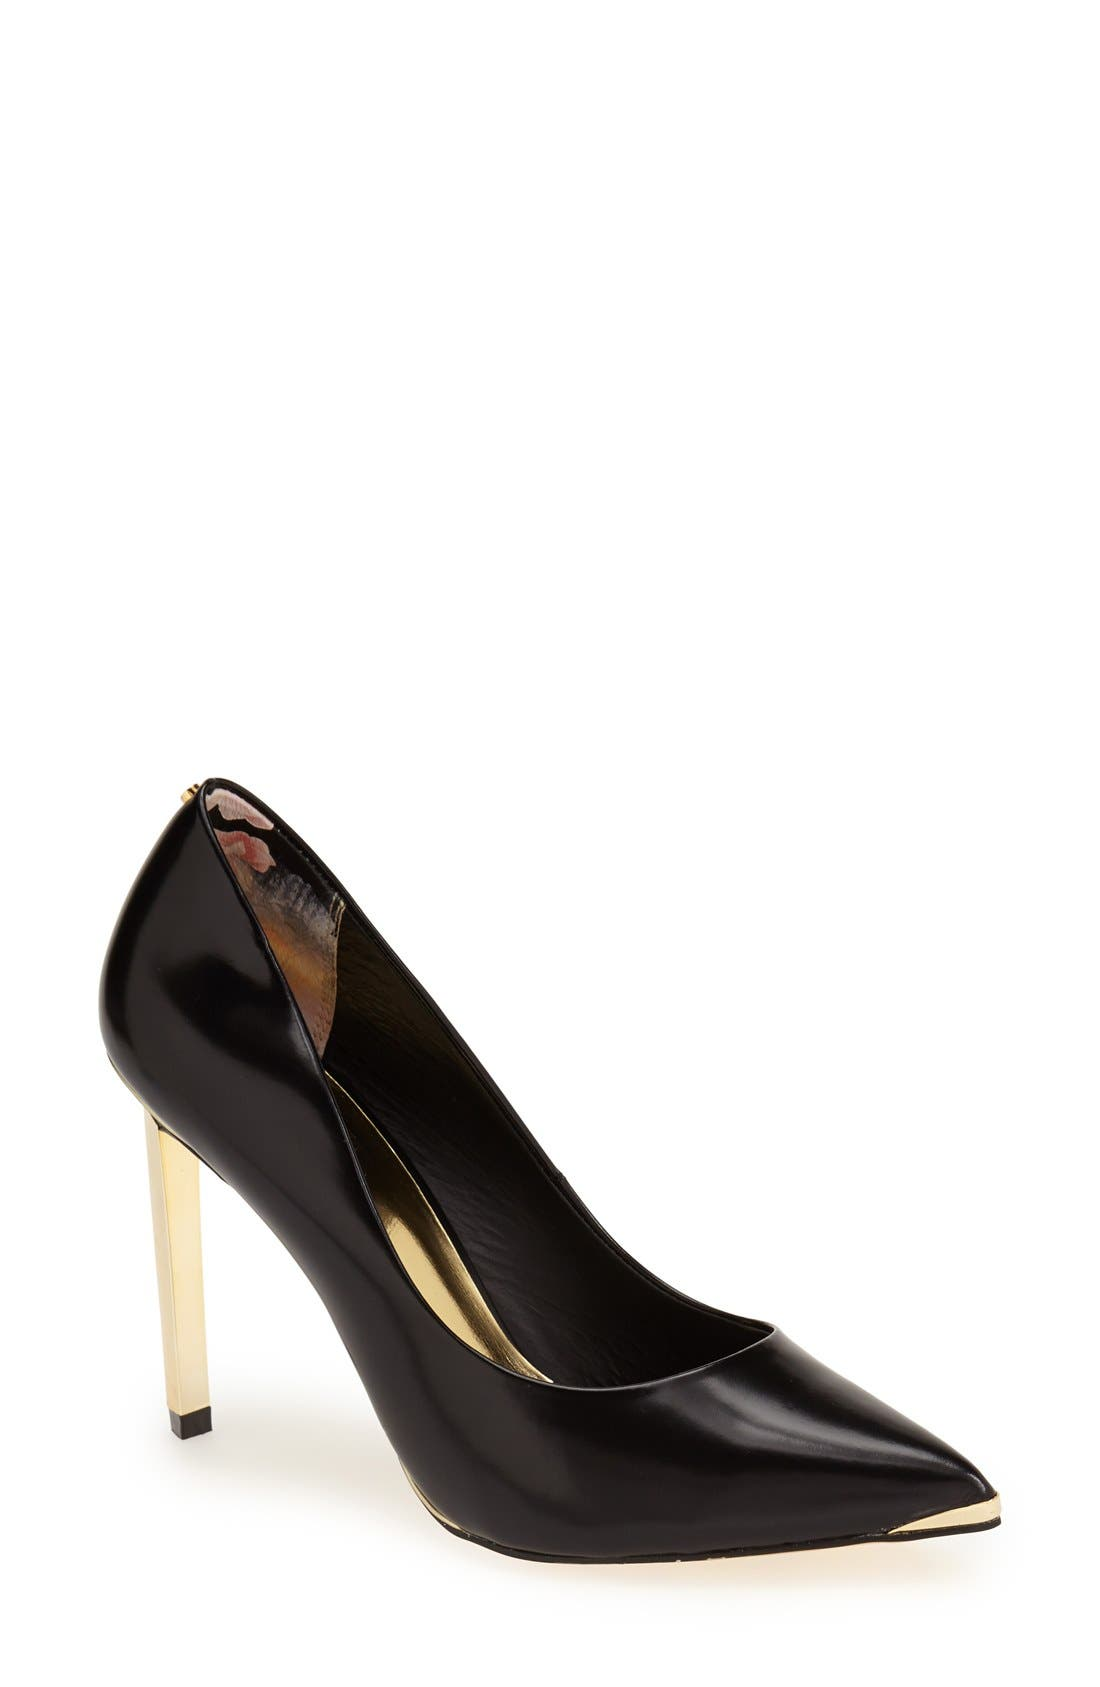 Alternate Image 1 Selected - Ted Baker London 'Elvena' Pump (Women)